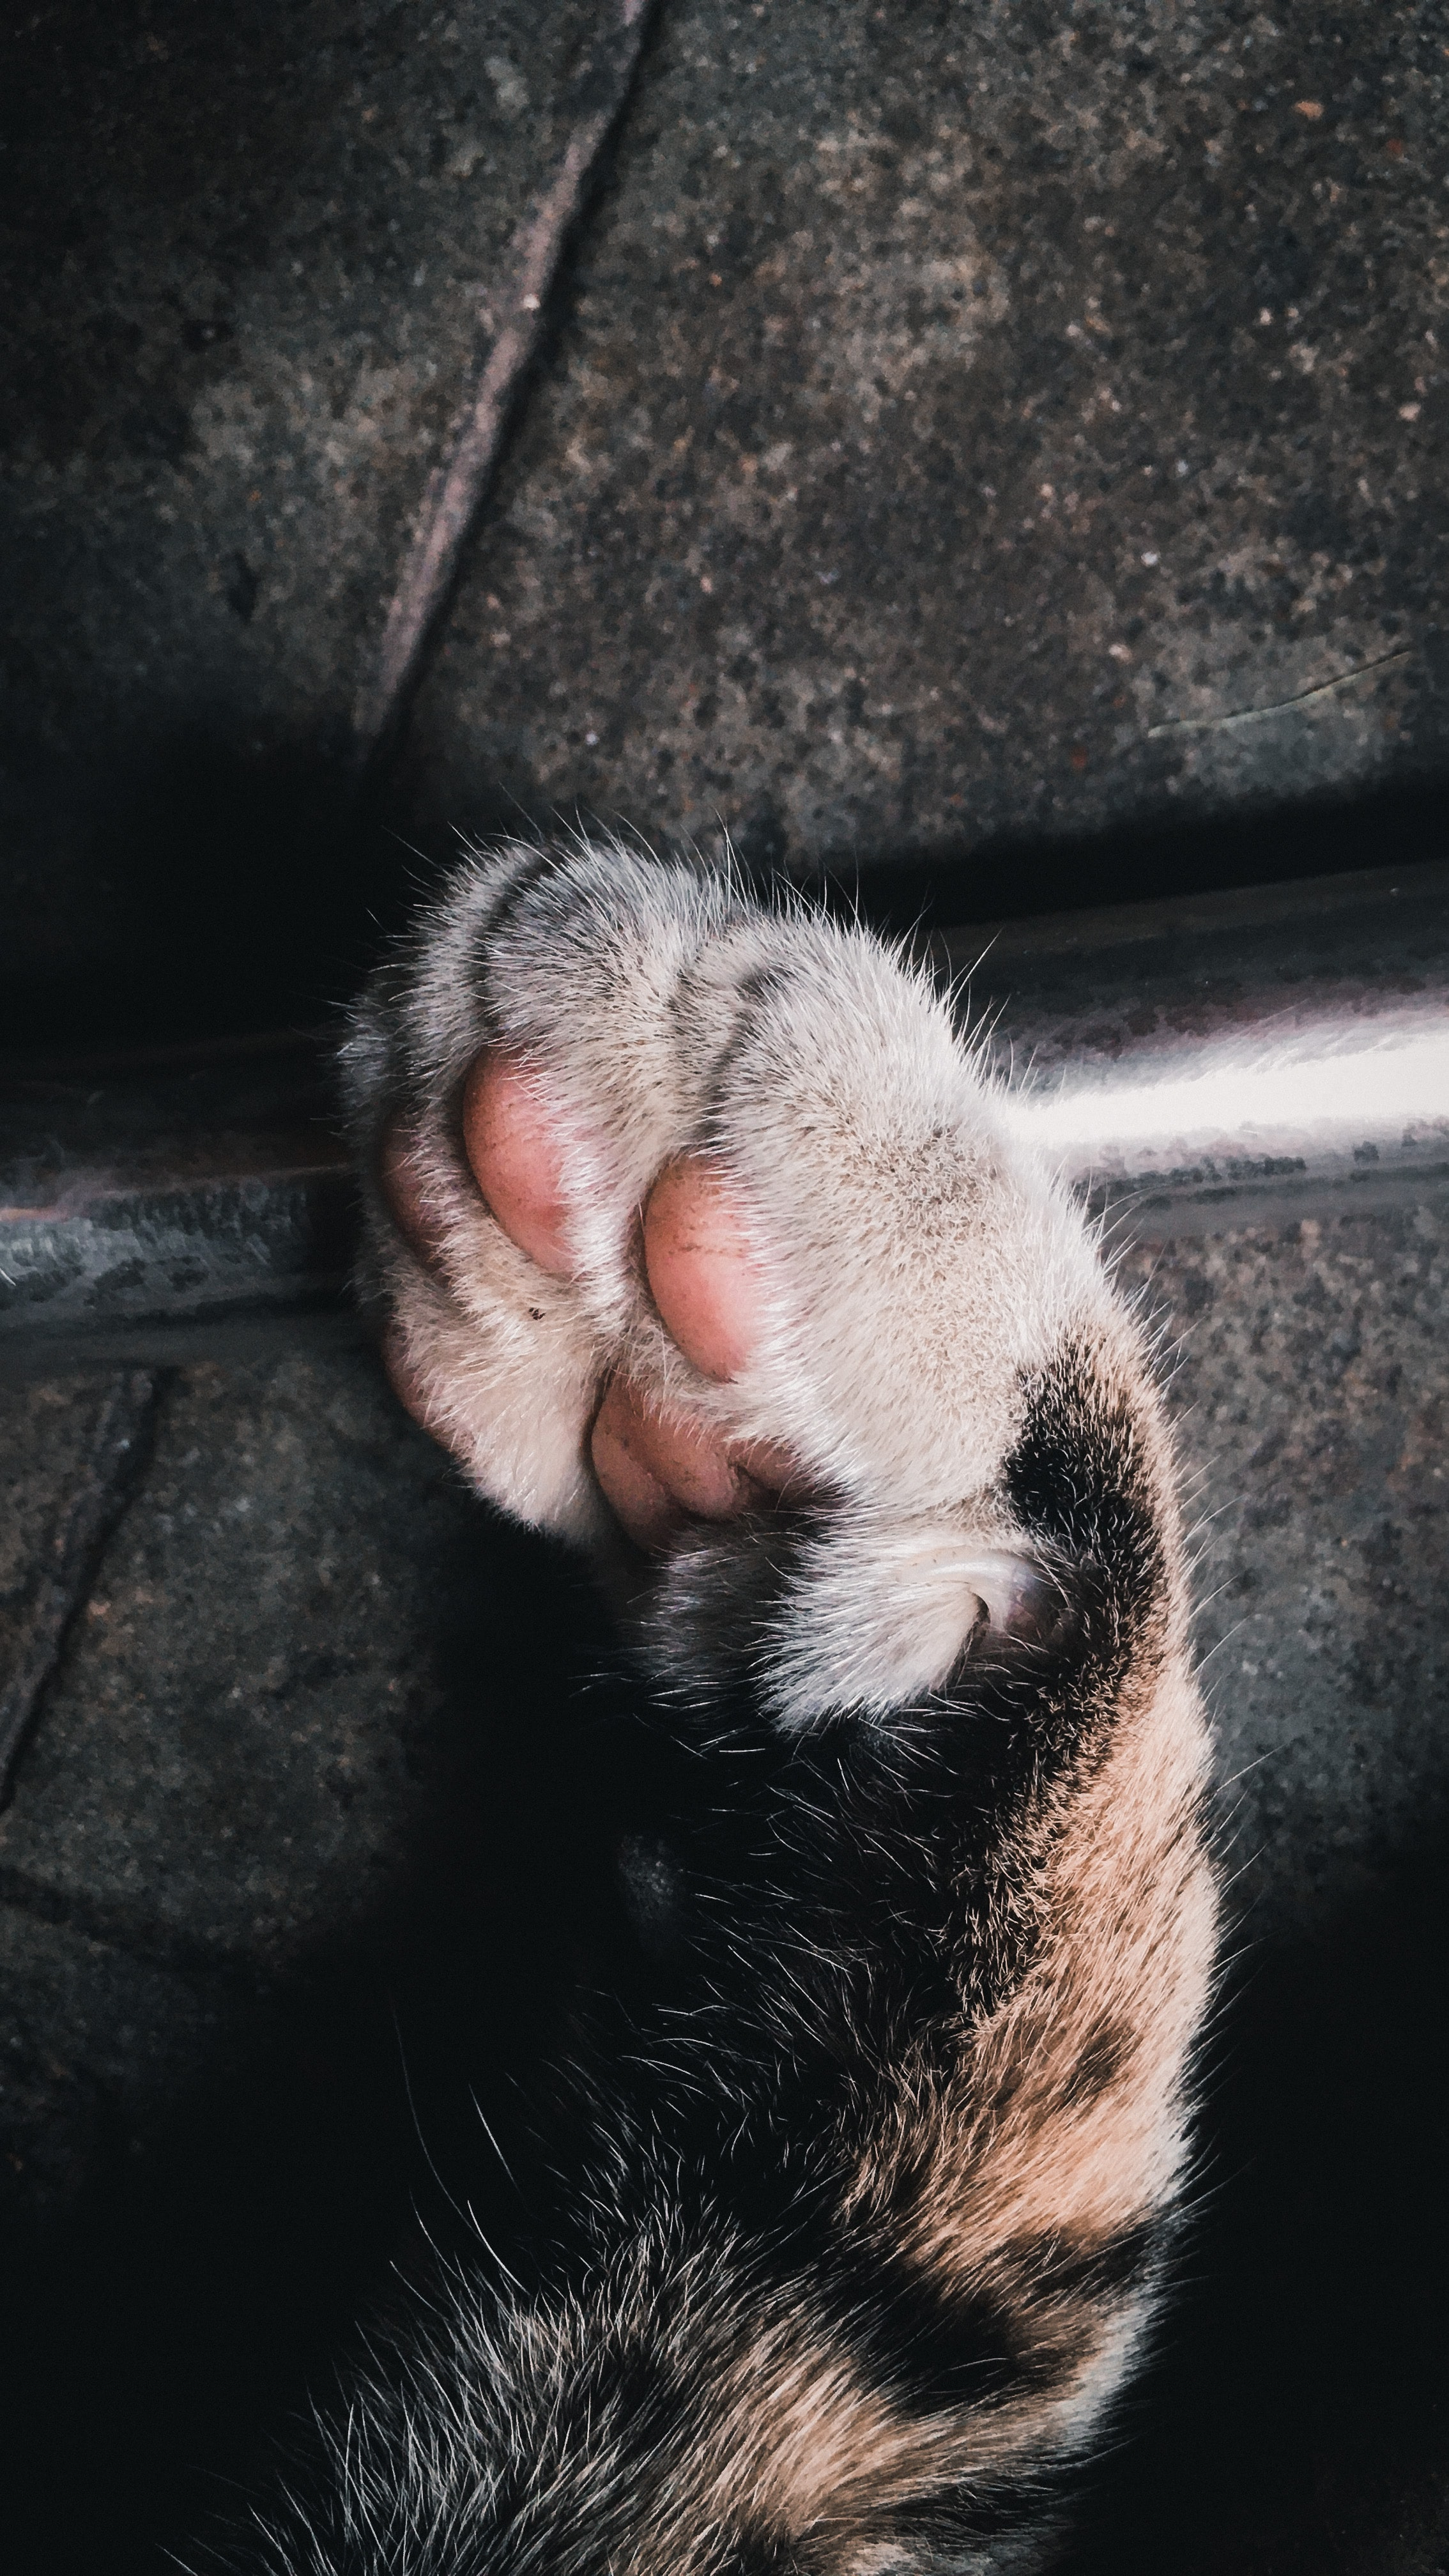 156790 download wallpaper Animals, Paw, Cat, Cushion, Hassock, Nicely, Nice screensavers and pictures for free